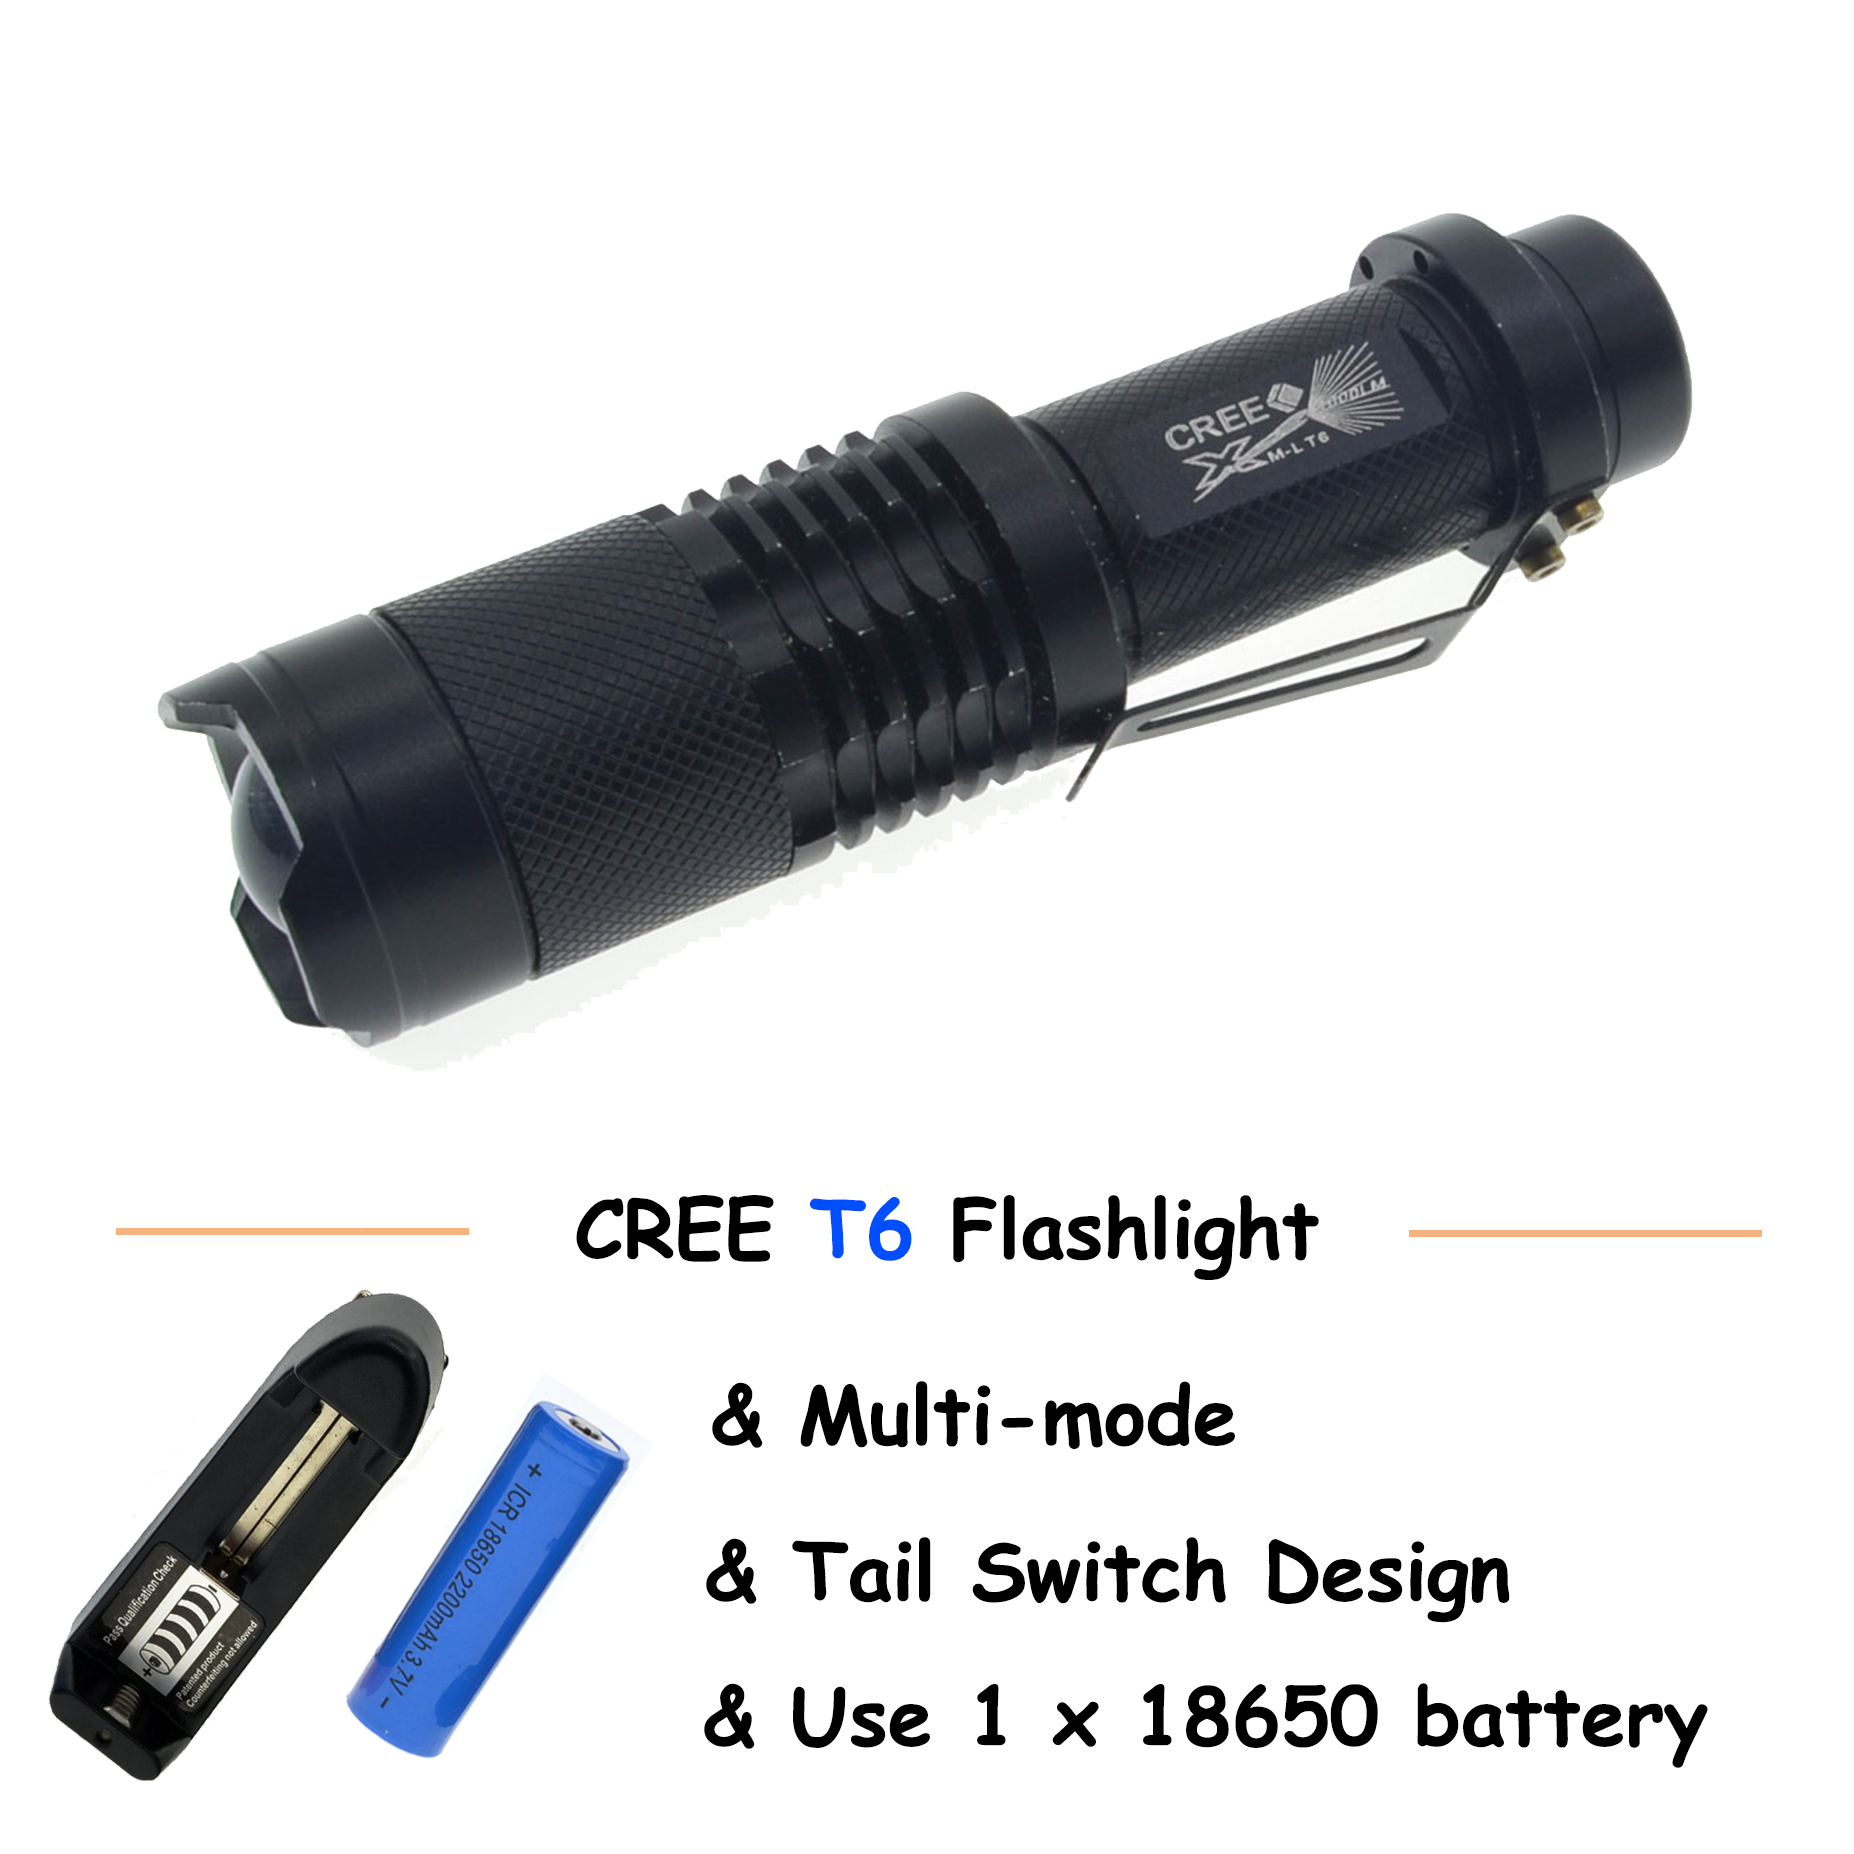 cree rechargeable flashlight led torch XM L T6 waterproof  5 mode lanterna flash light lamp battery 18650 with charger 2017 newest flashlight led cree xm l2 flash light 4 mode torch bike bicycle light outdoor lighting 18650 battery mount holder